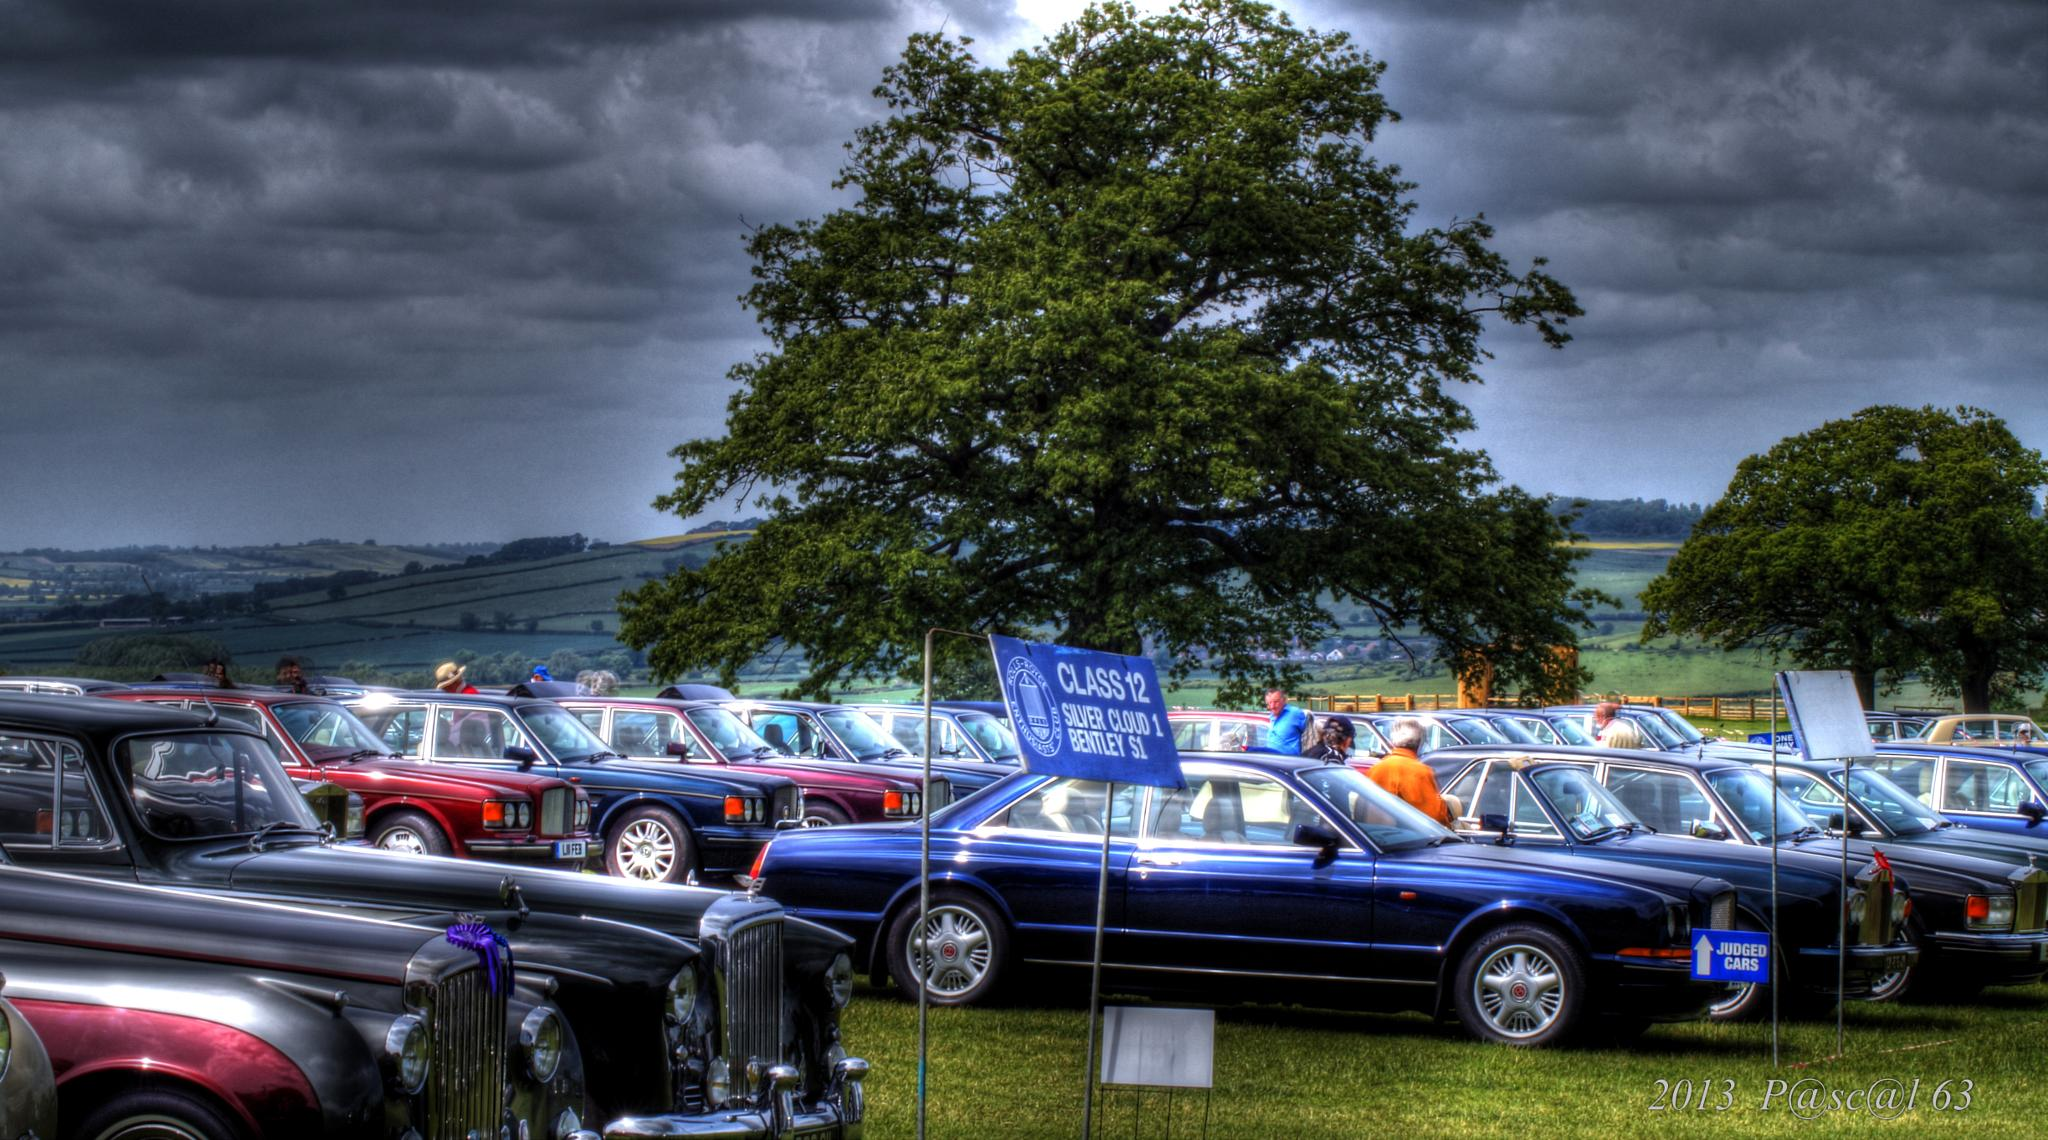 Rolls Royce Enthusiasts Club annual rally by Pascal Pugeault